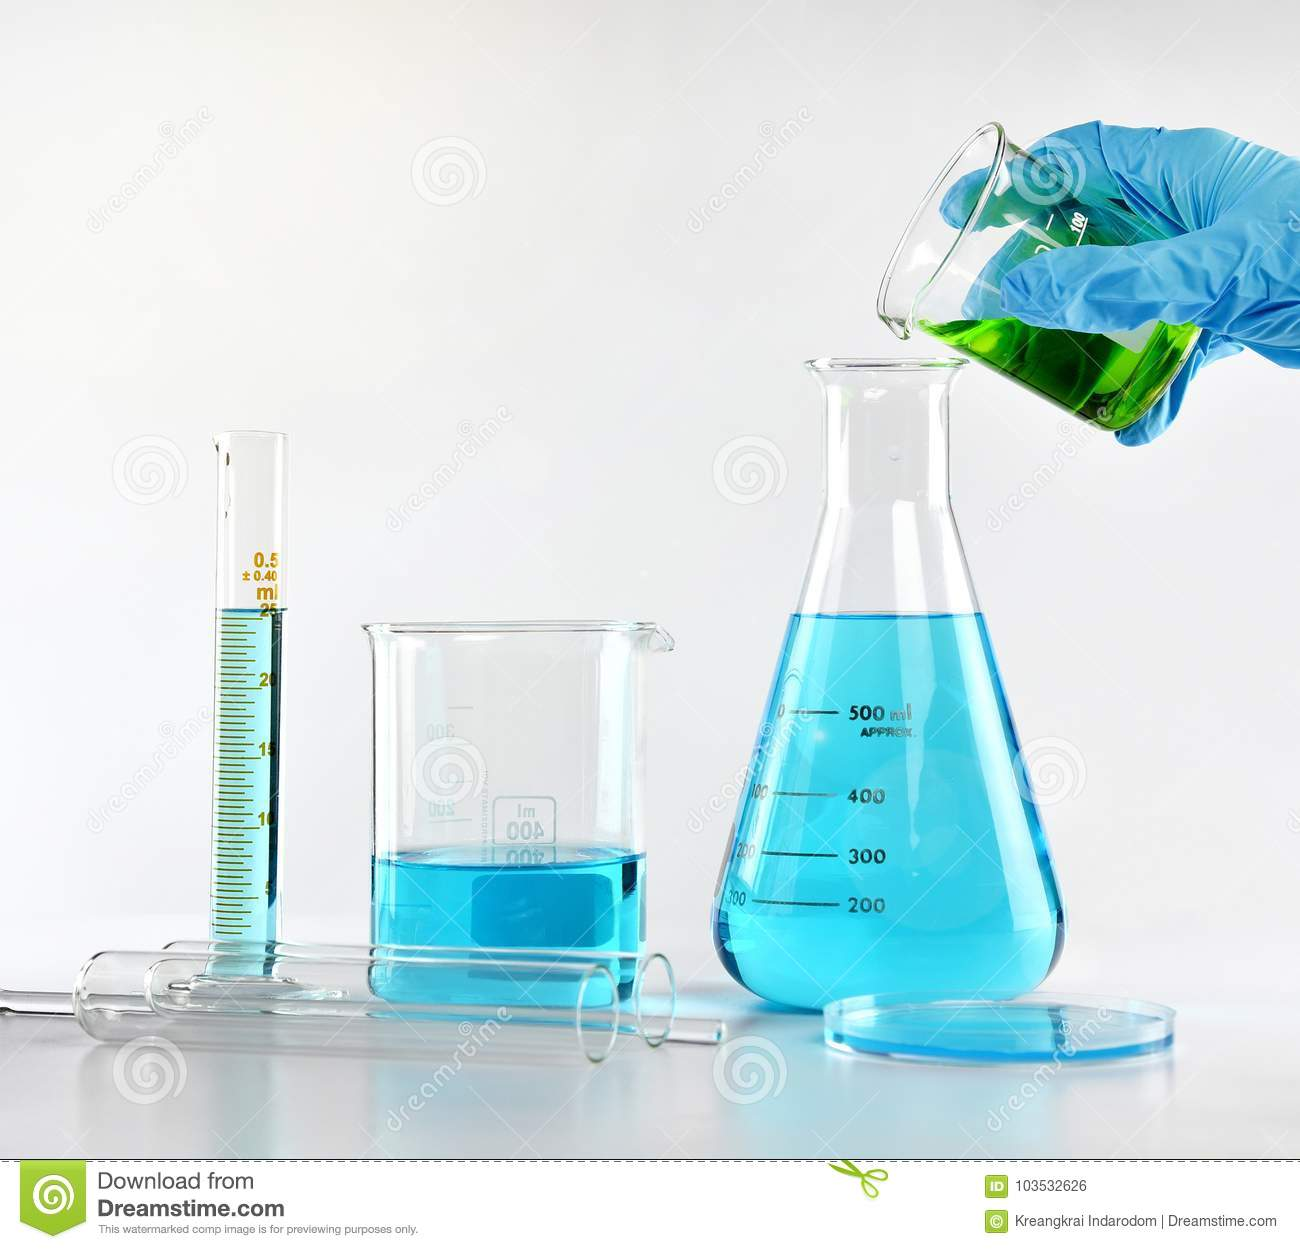 Scientist With Equipment And Science Experiments, Laboratory